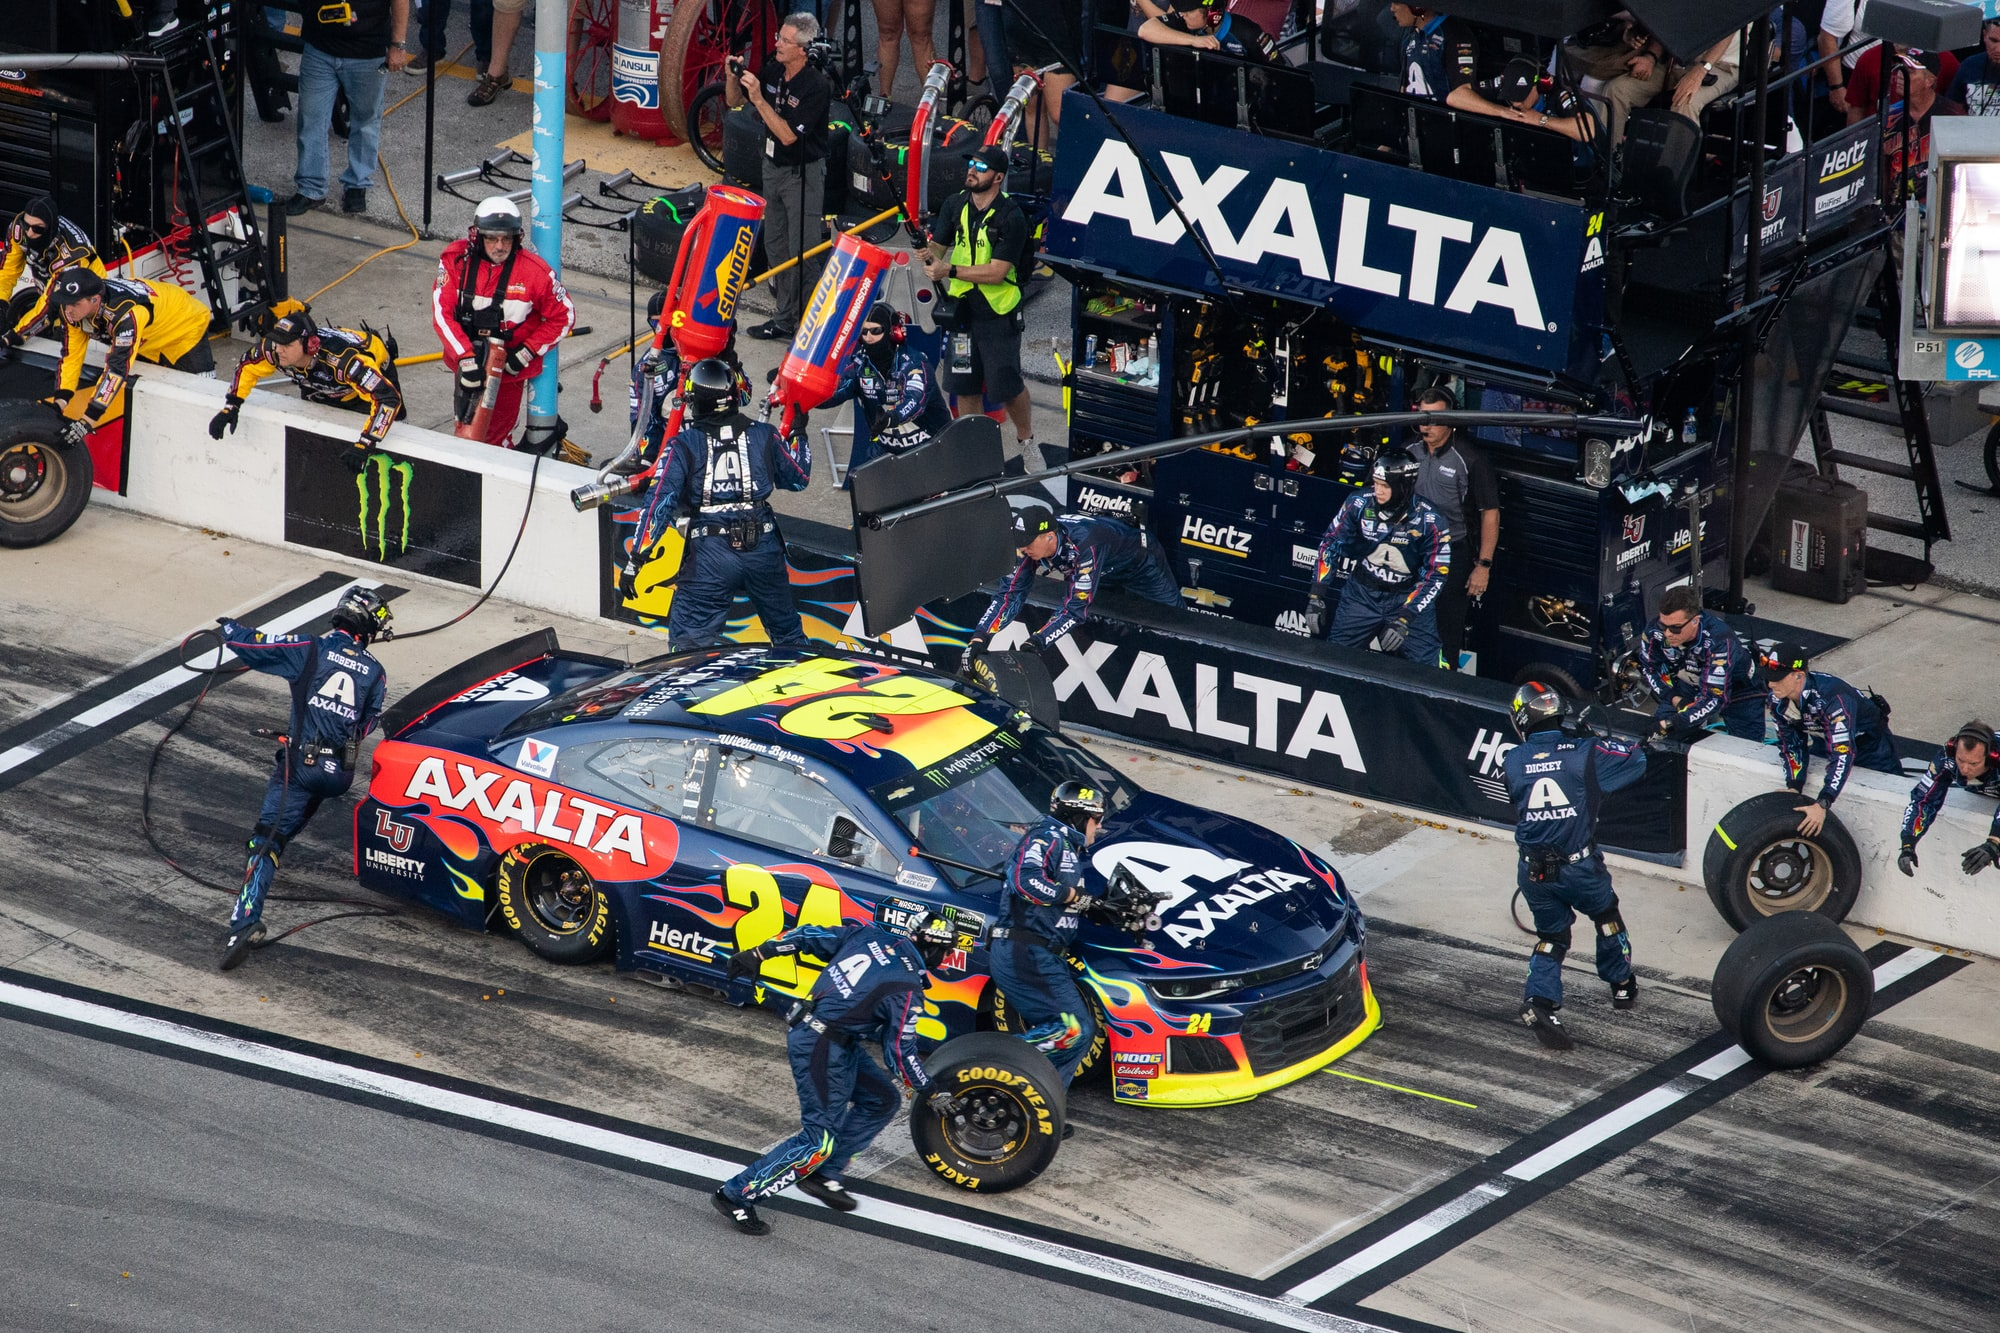 Daytona 500 live stream, TV Channels, Tickets and how to watch live online